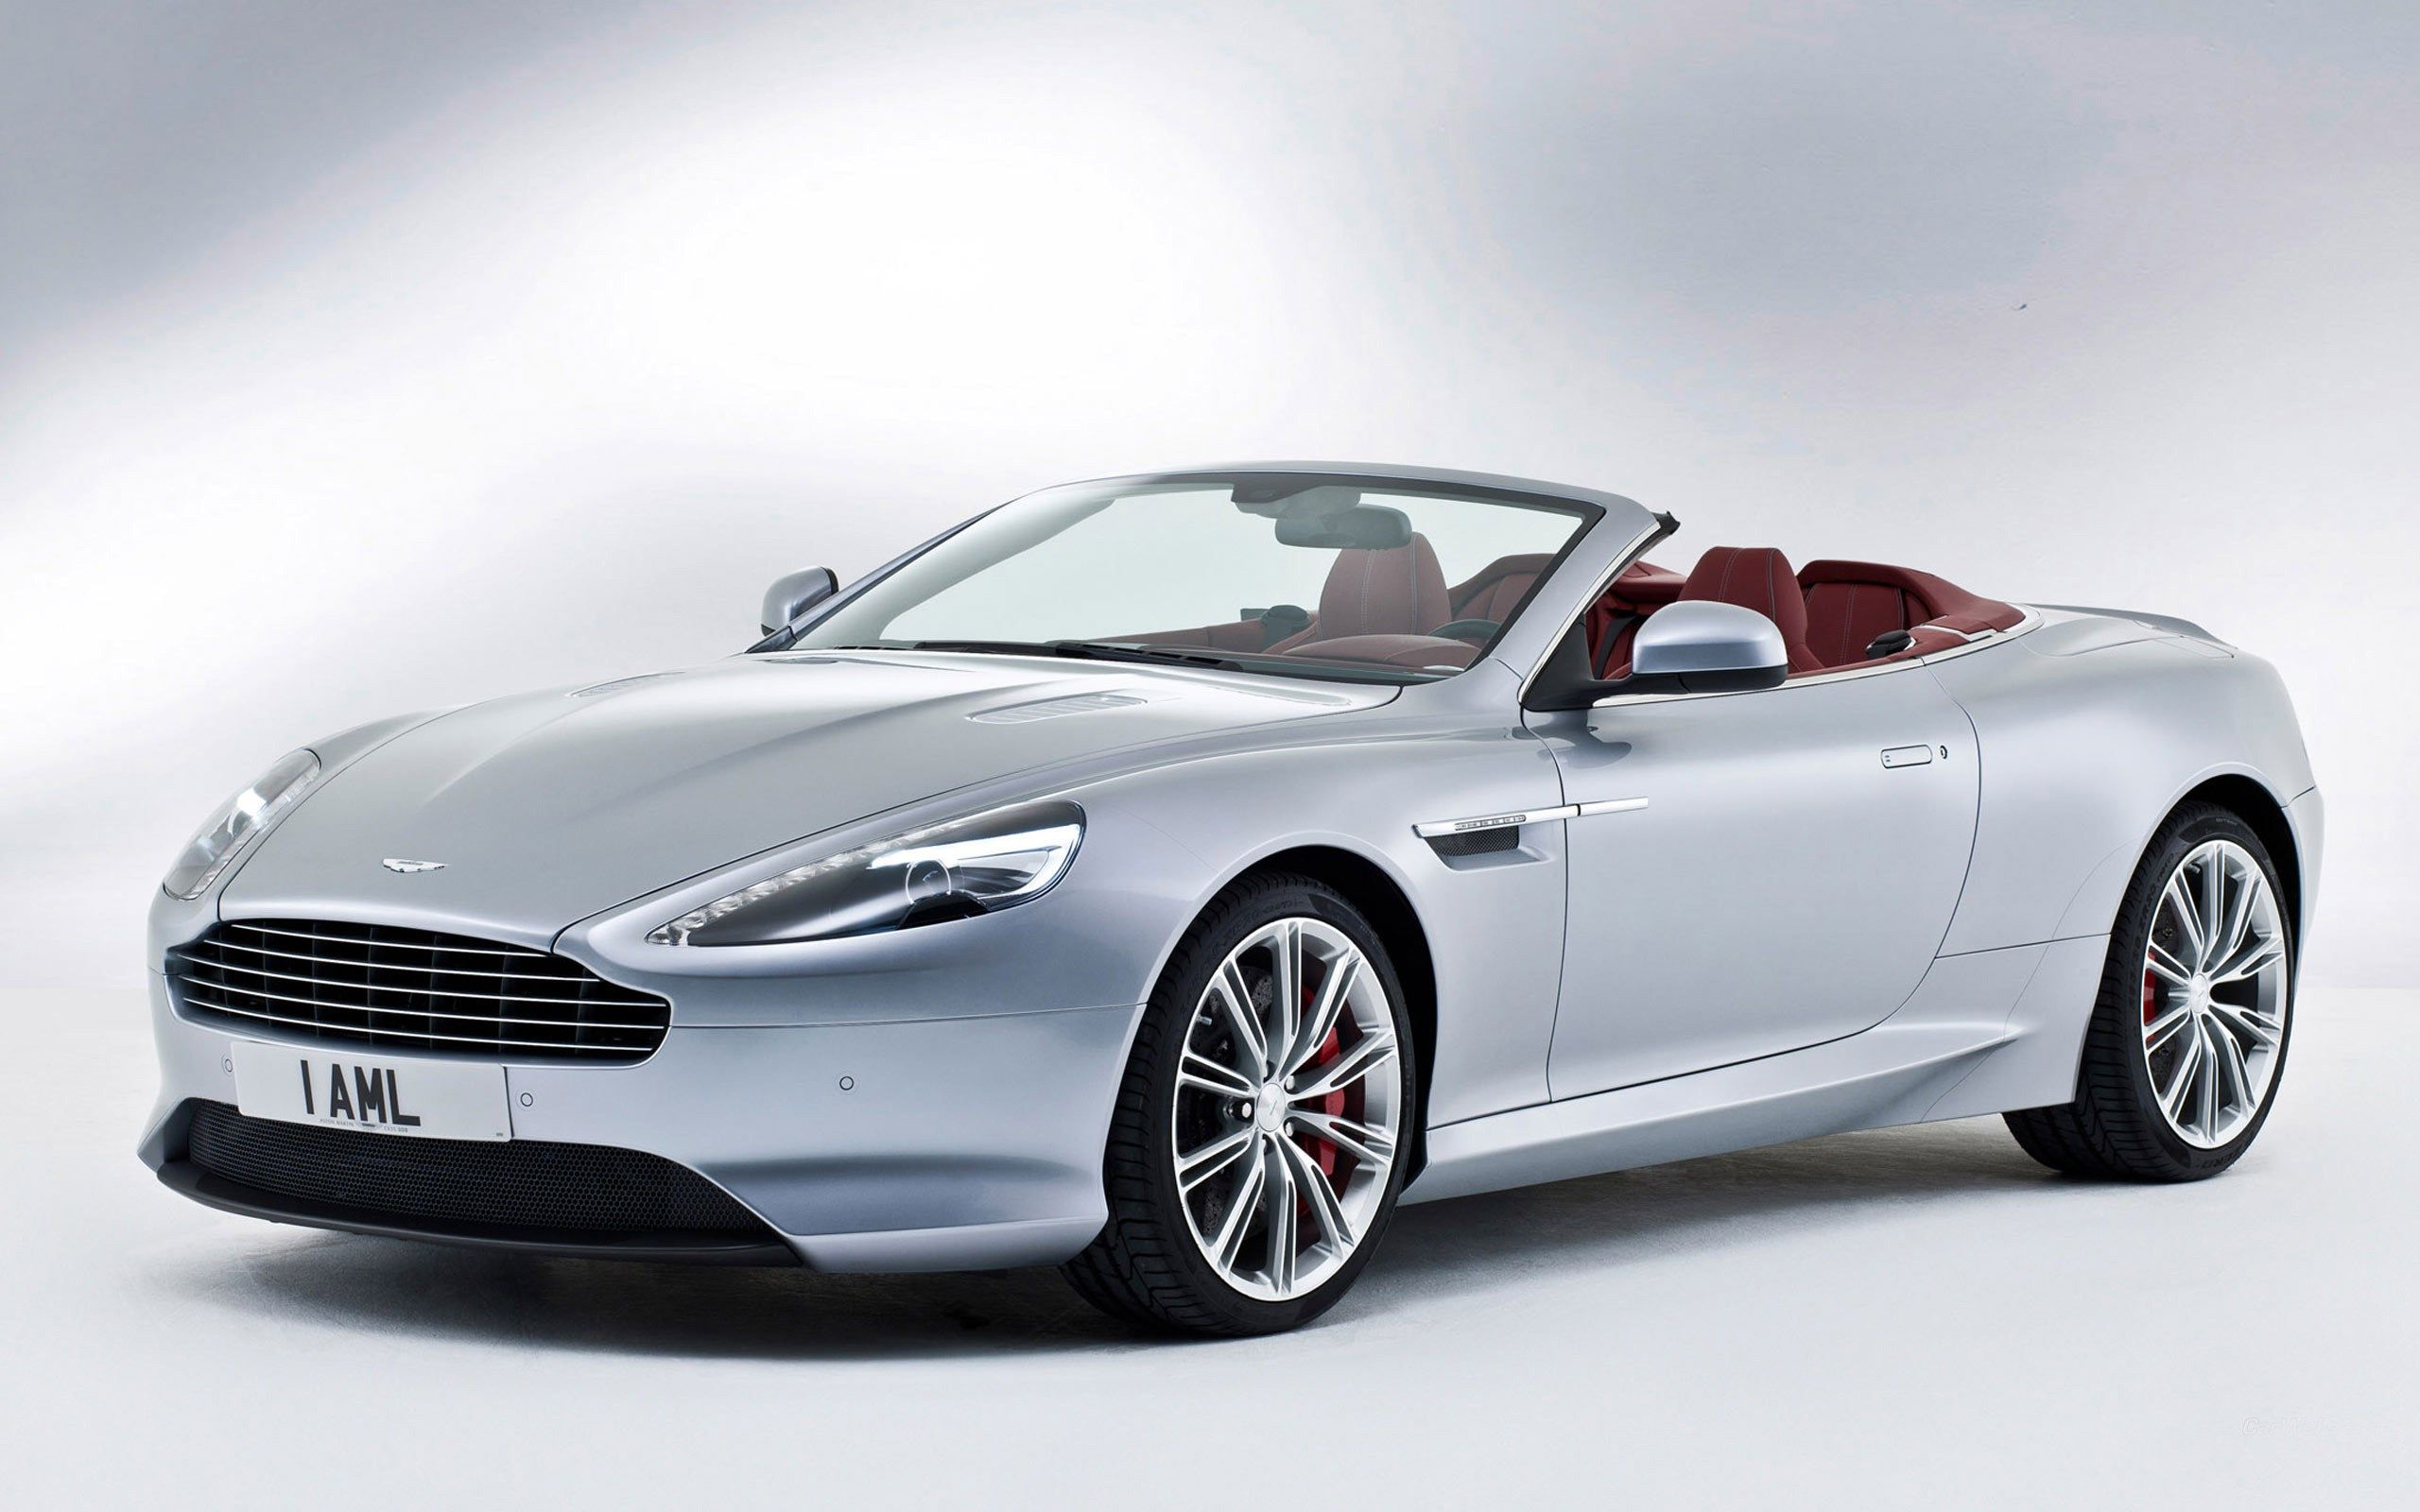 The 2013 aston martin is available as a coupe or convertible soft top known as the volante the coupe